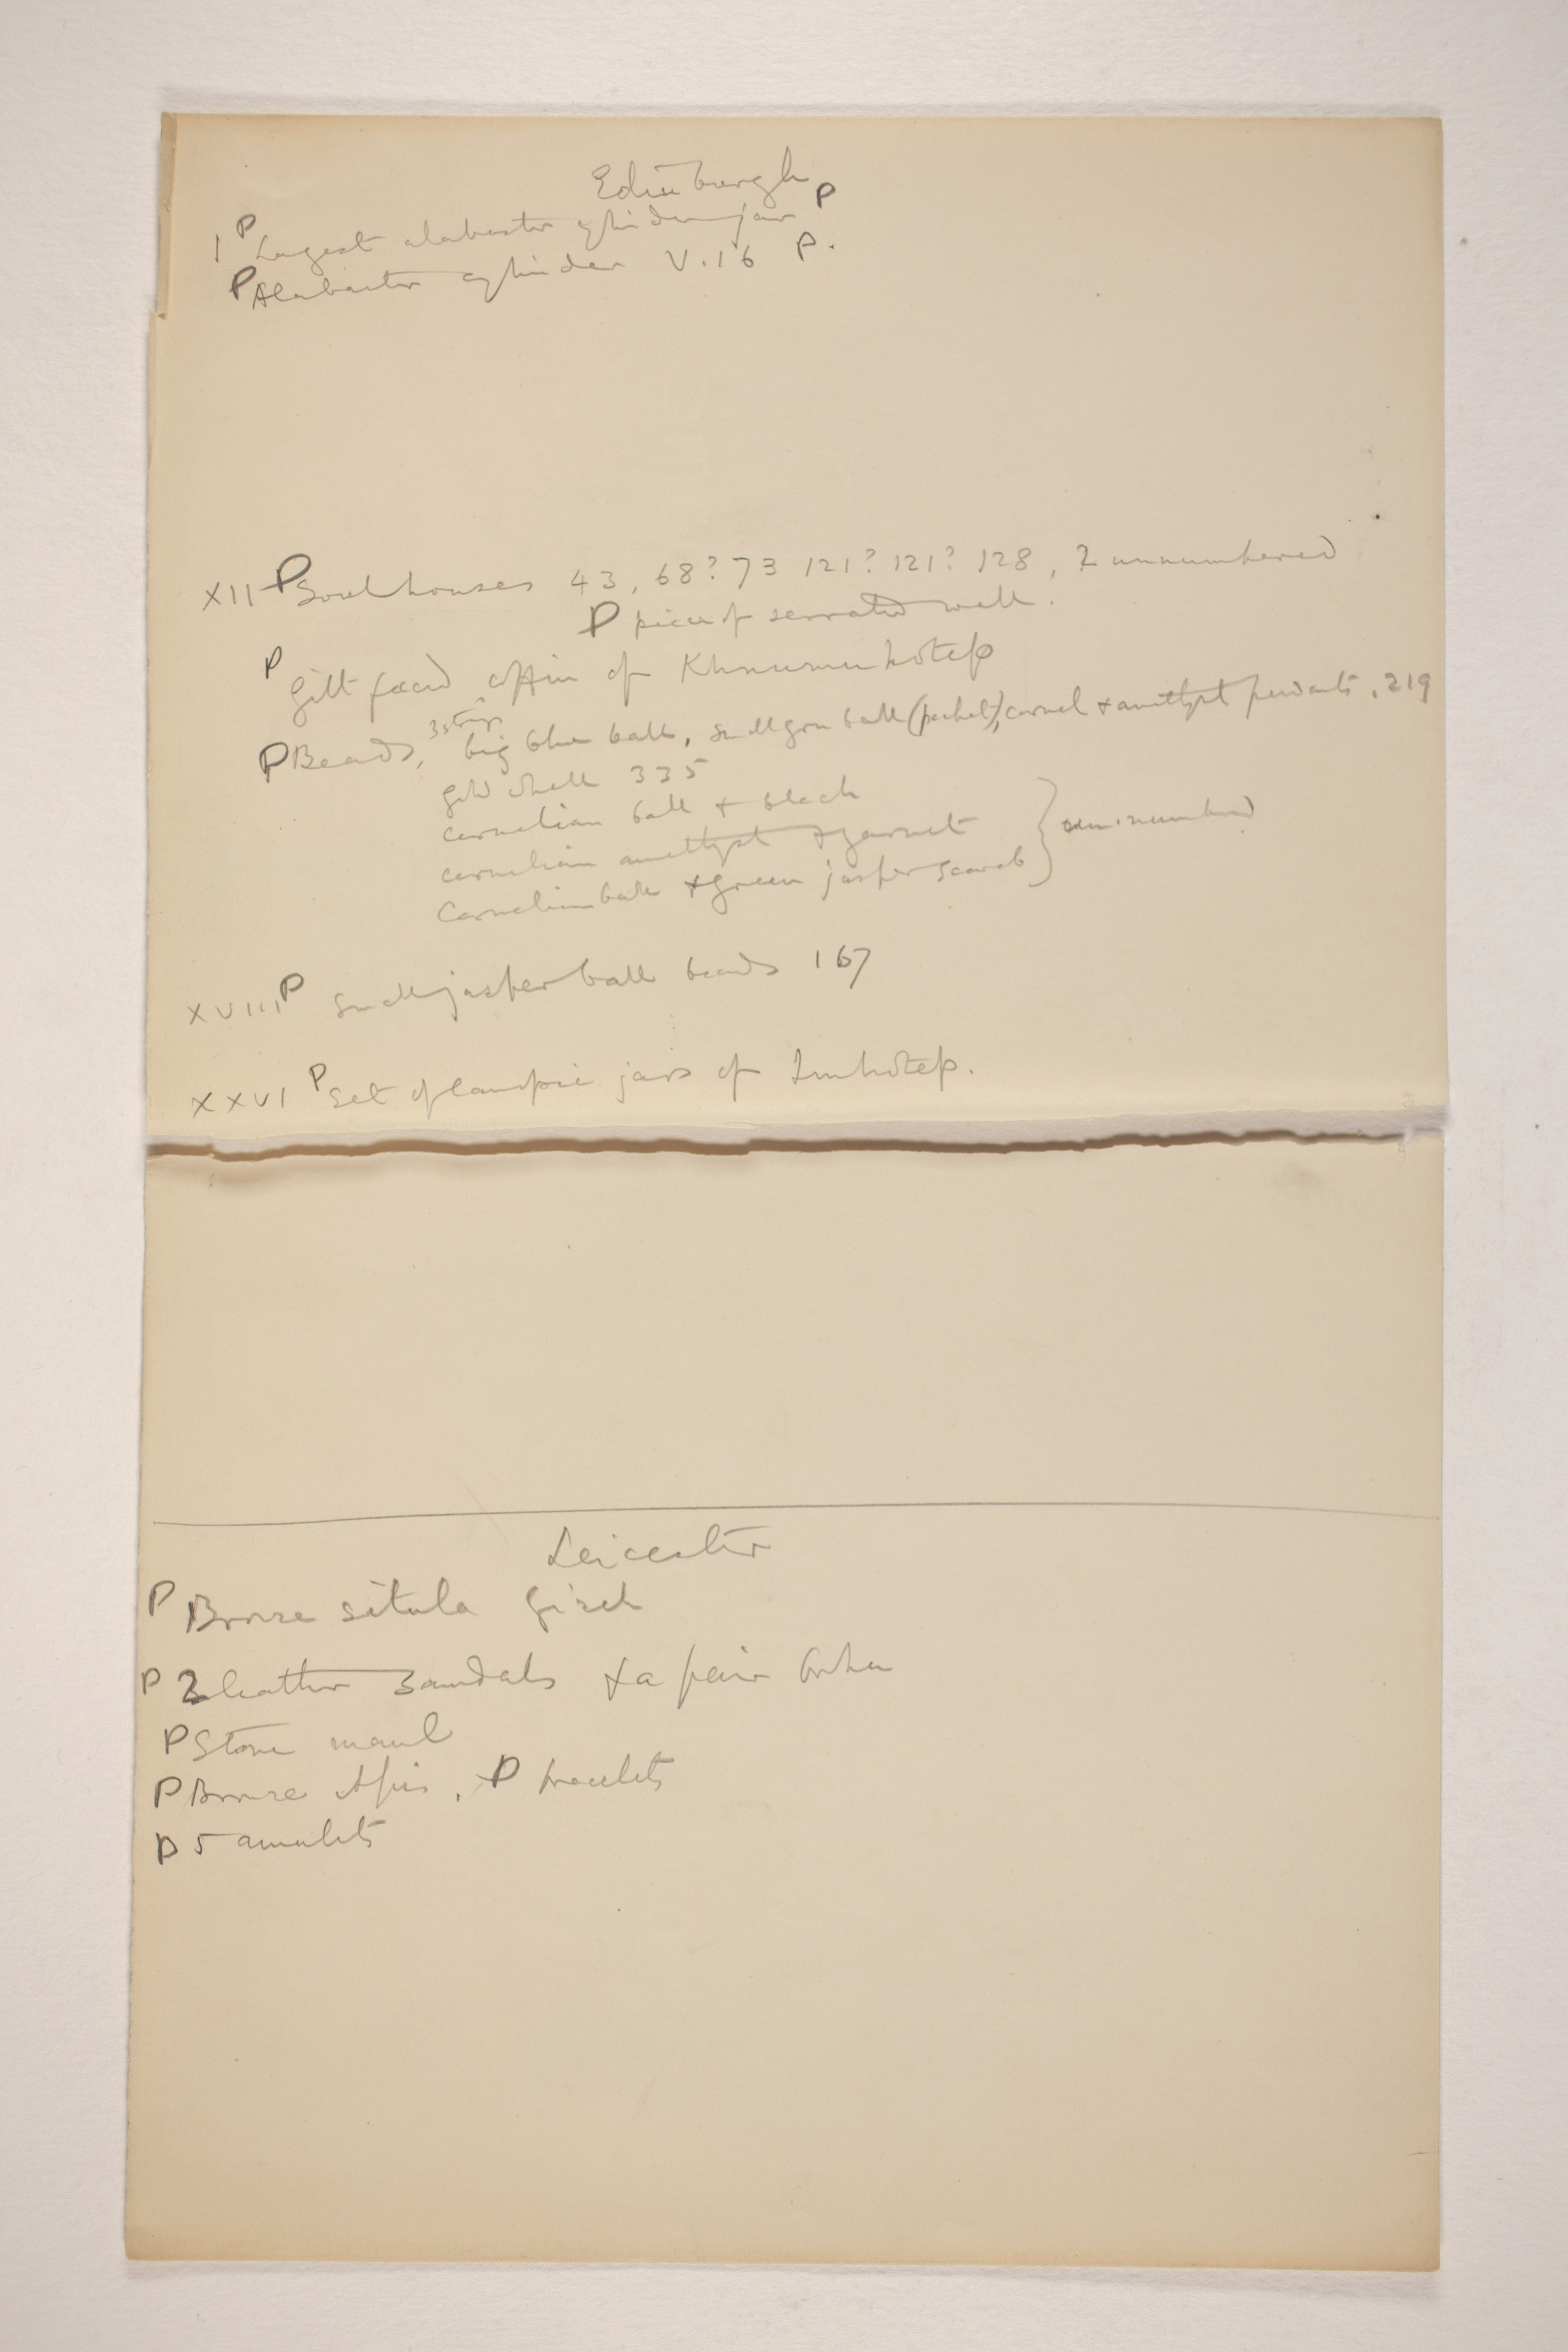 1906-07 Giza and Deir Rifeh Multiple institution list PMA/WFP1/D/15/17